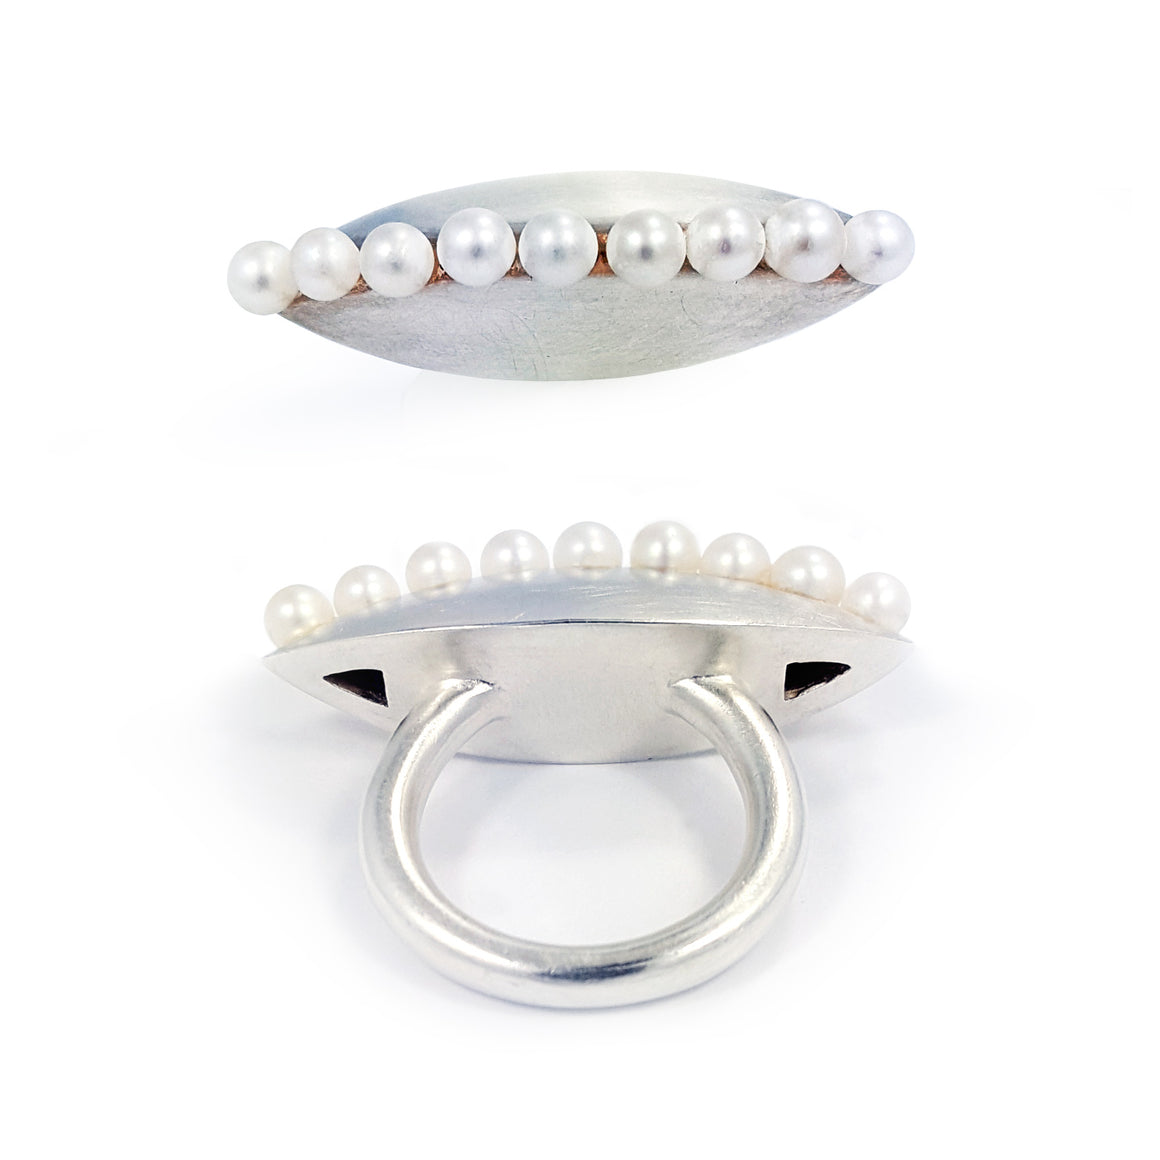 Silver ring satin finish with fresh water pearls, size 7.5